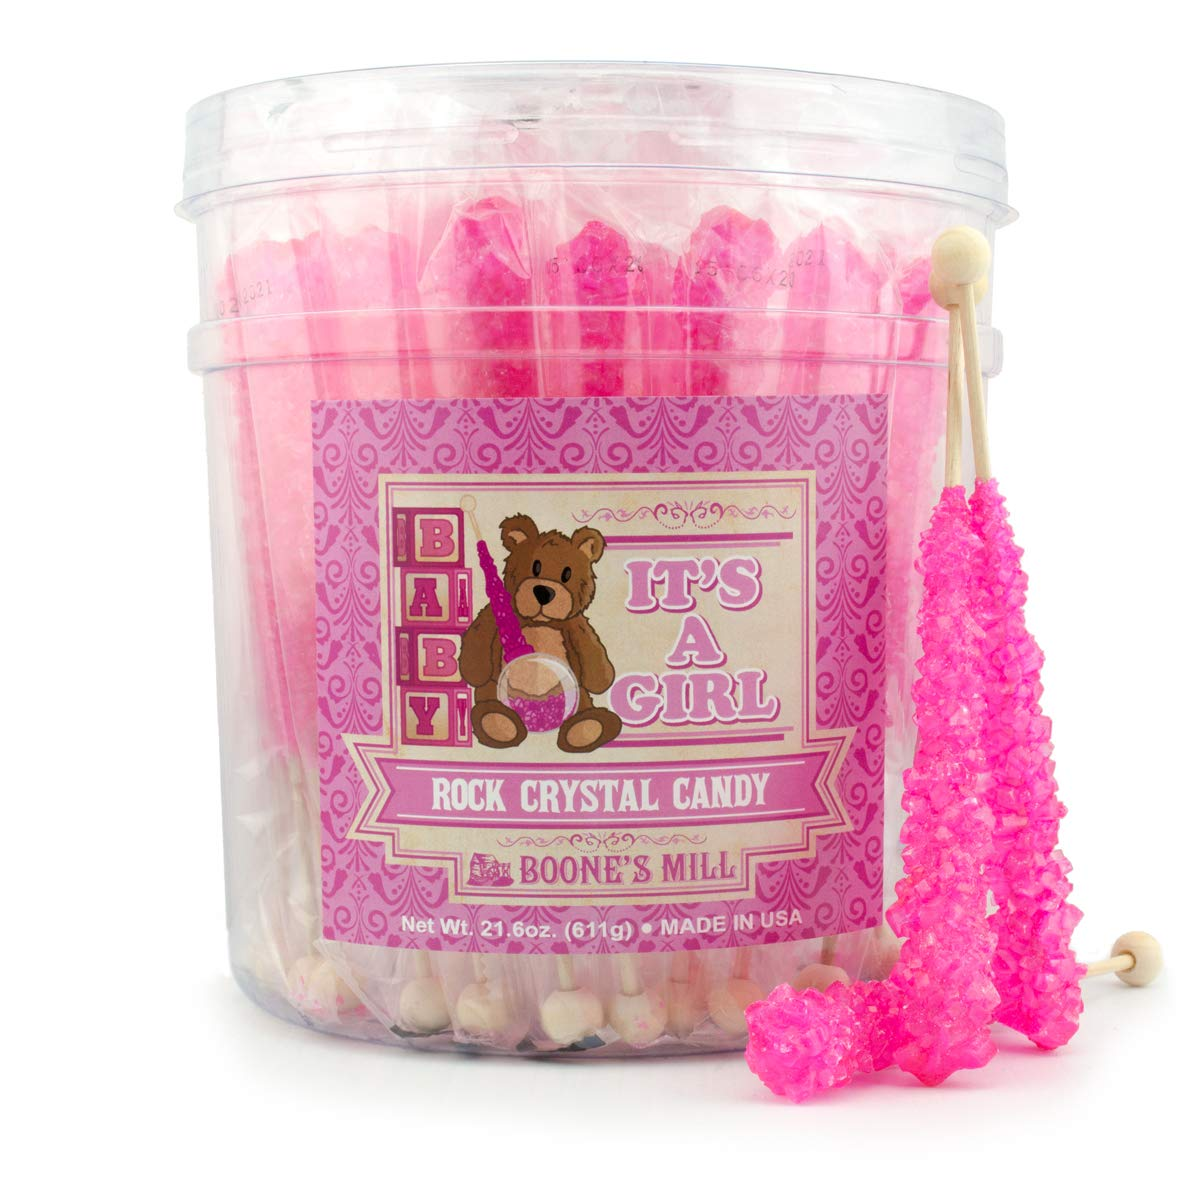 Gender Reveal Rock Crystal Candy Sticks | It's A Girl | 36 Count Pink Cotton Candy | Boone's Mill